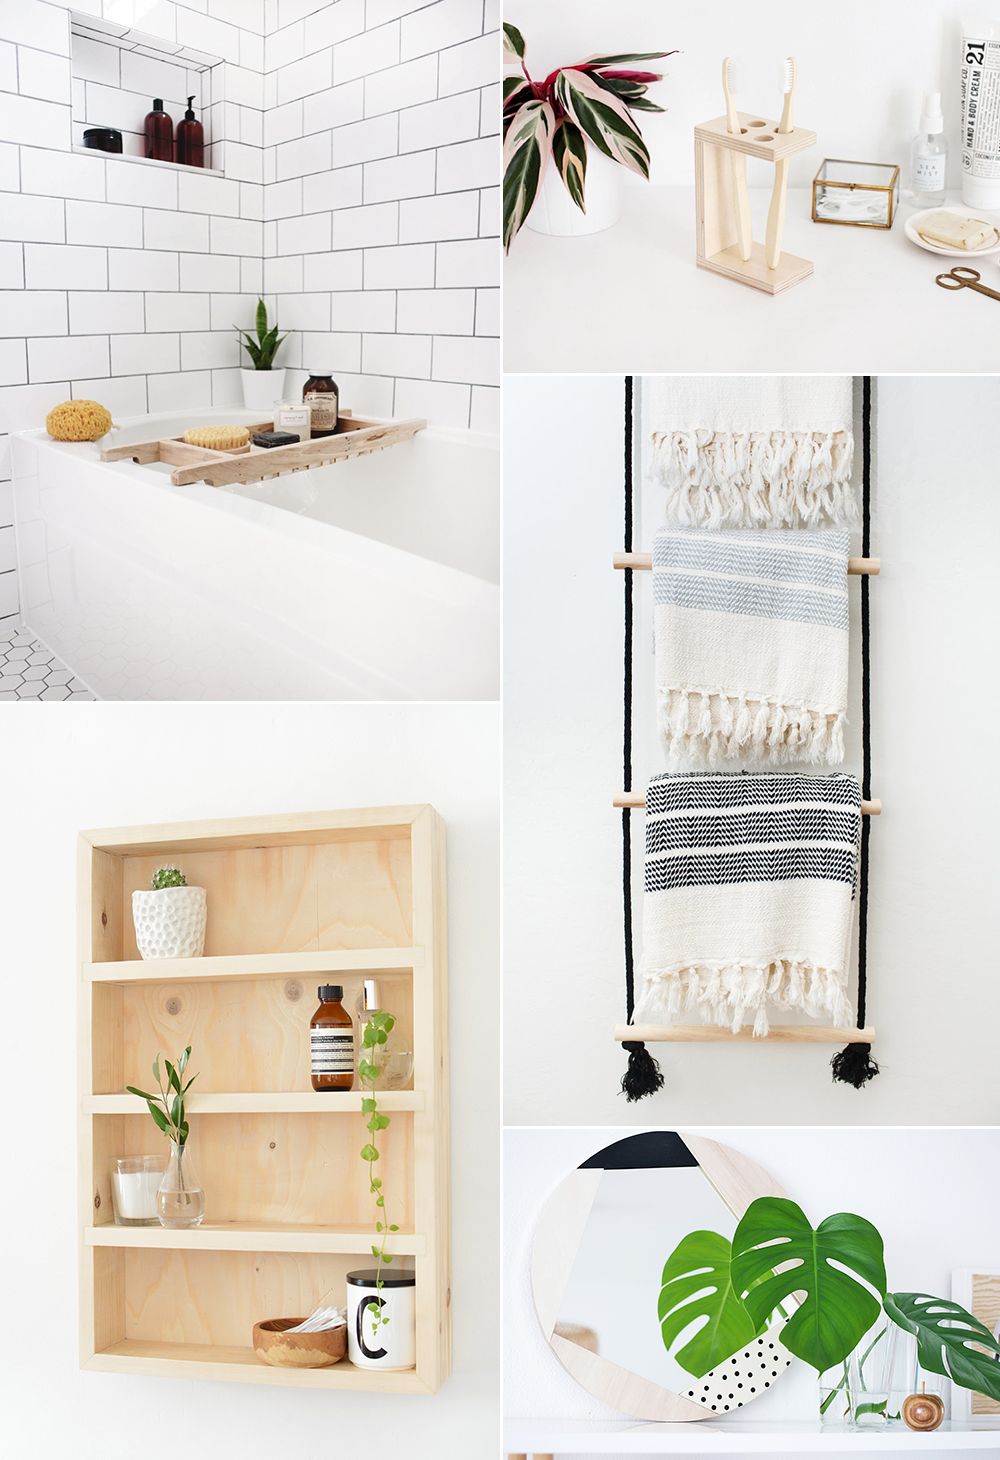 Badezimmer DIY-Ideen | we love handmade